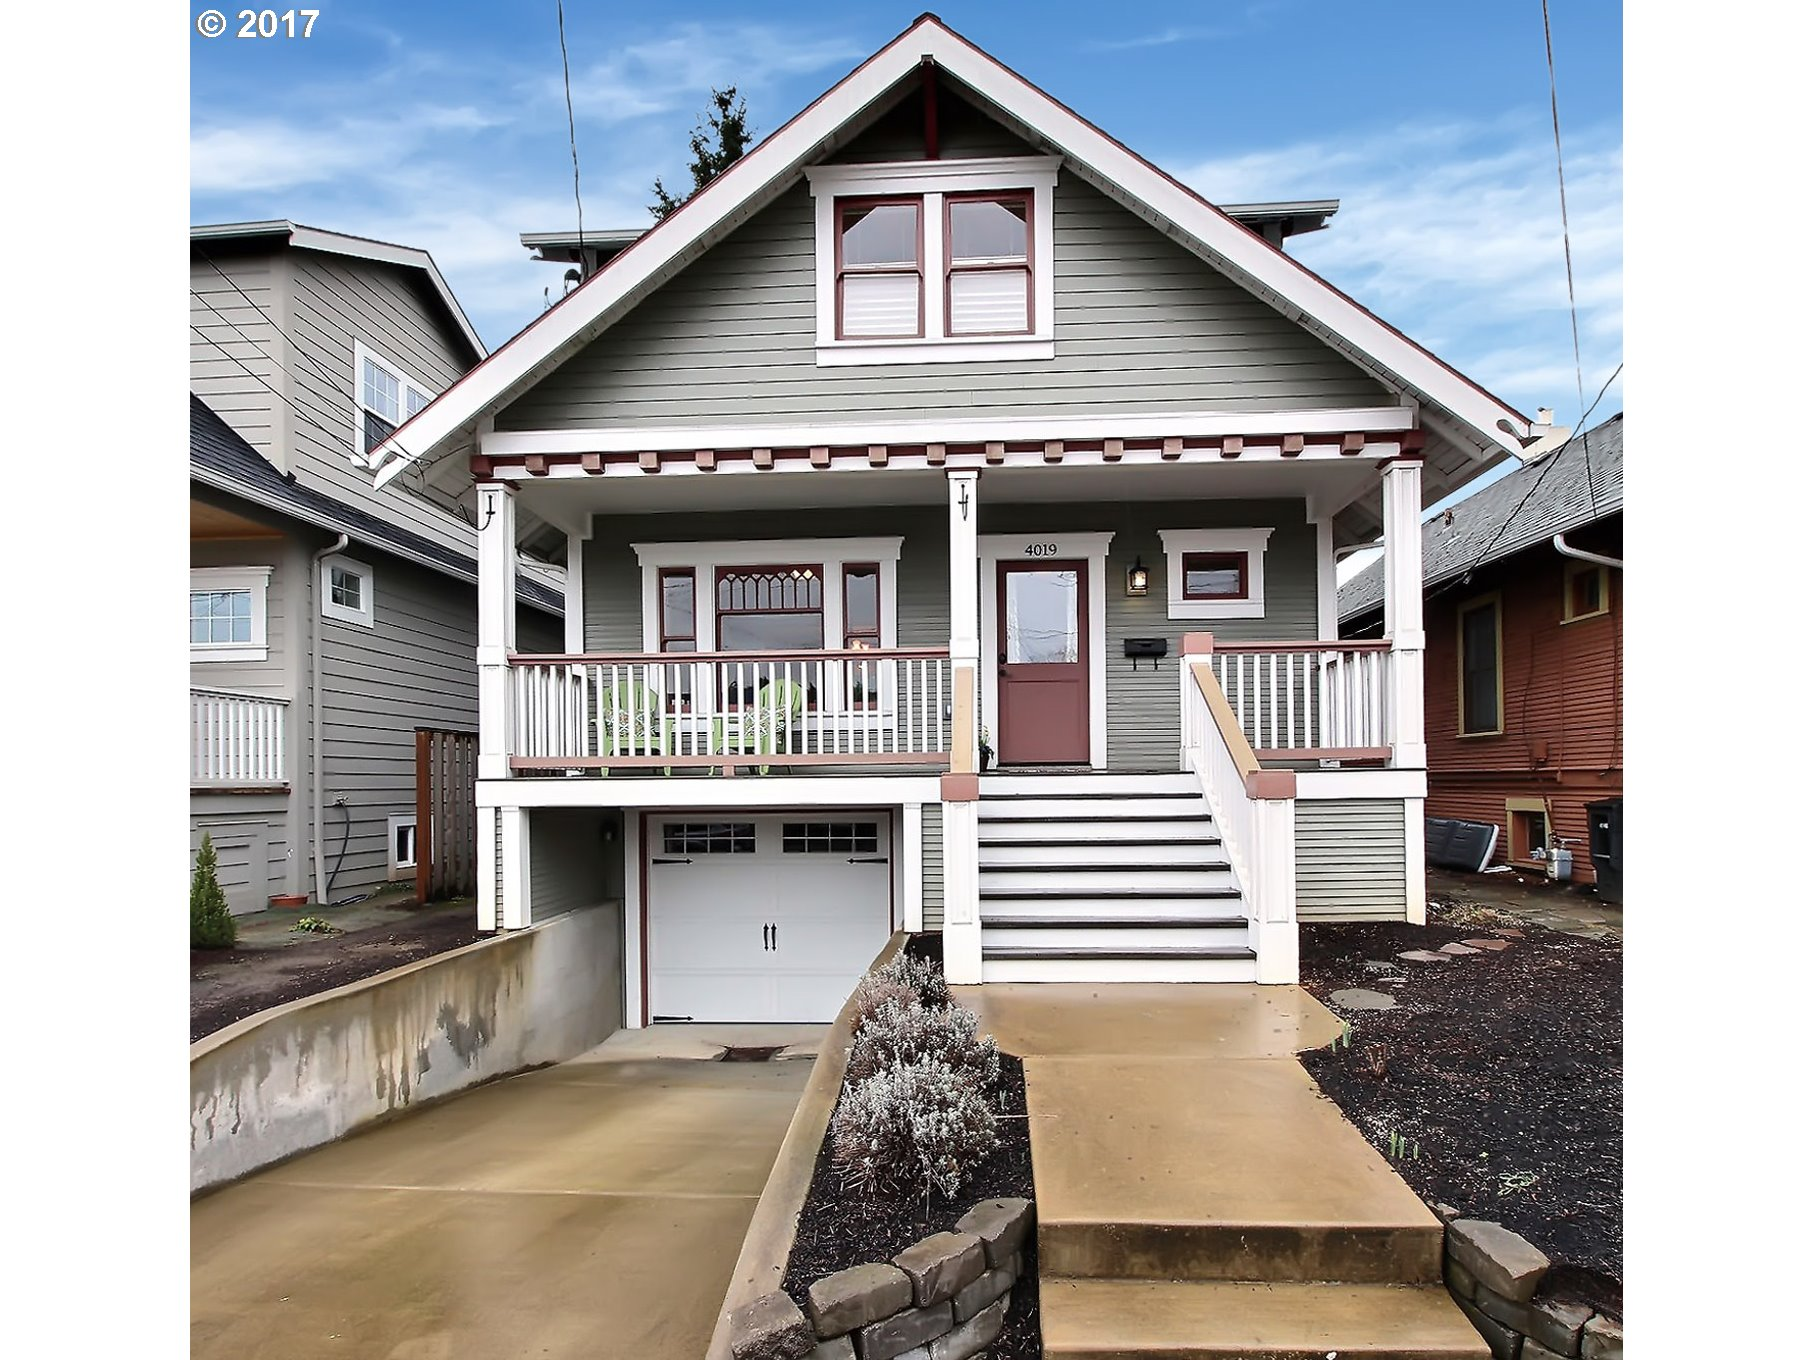 2644 sq. ft 4 bedrooms 2 bathrooms  House For Sale, Portland, OR